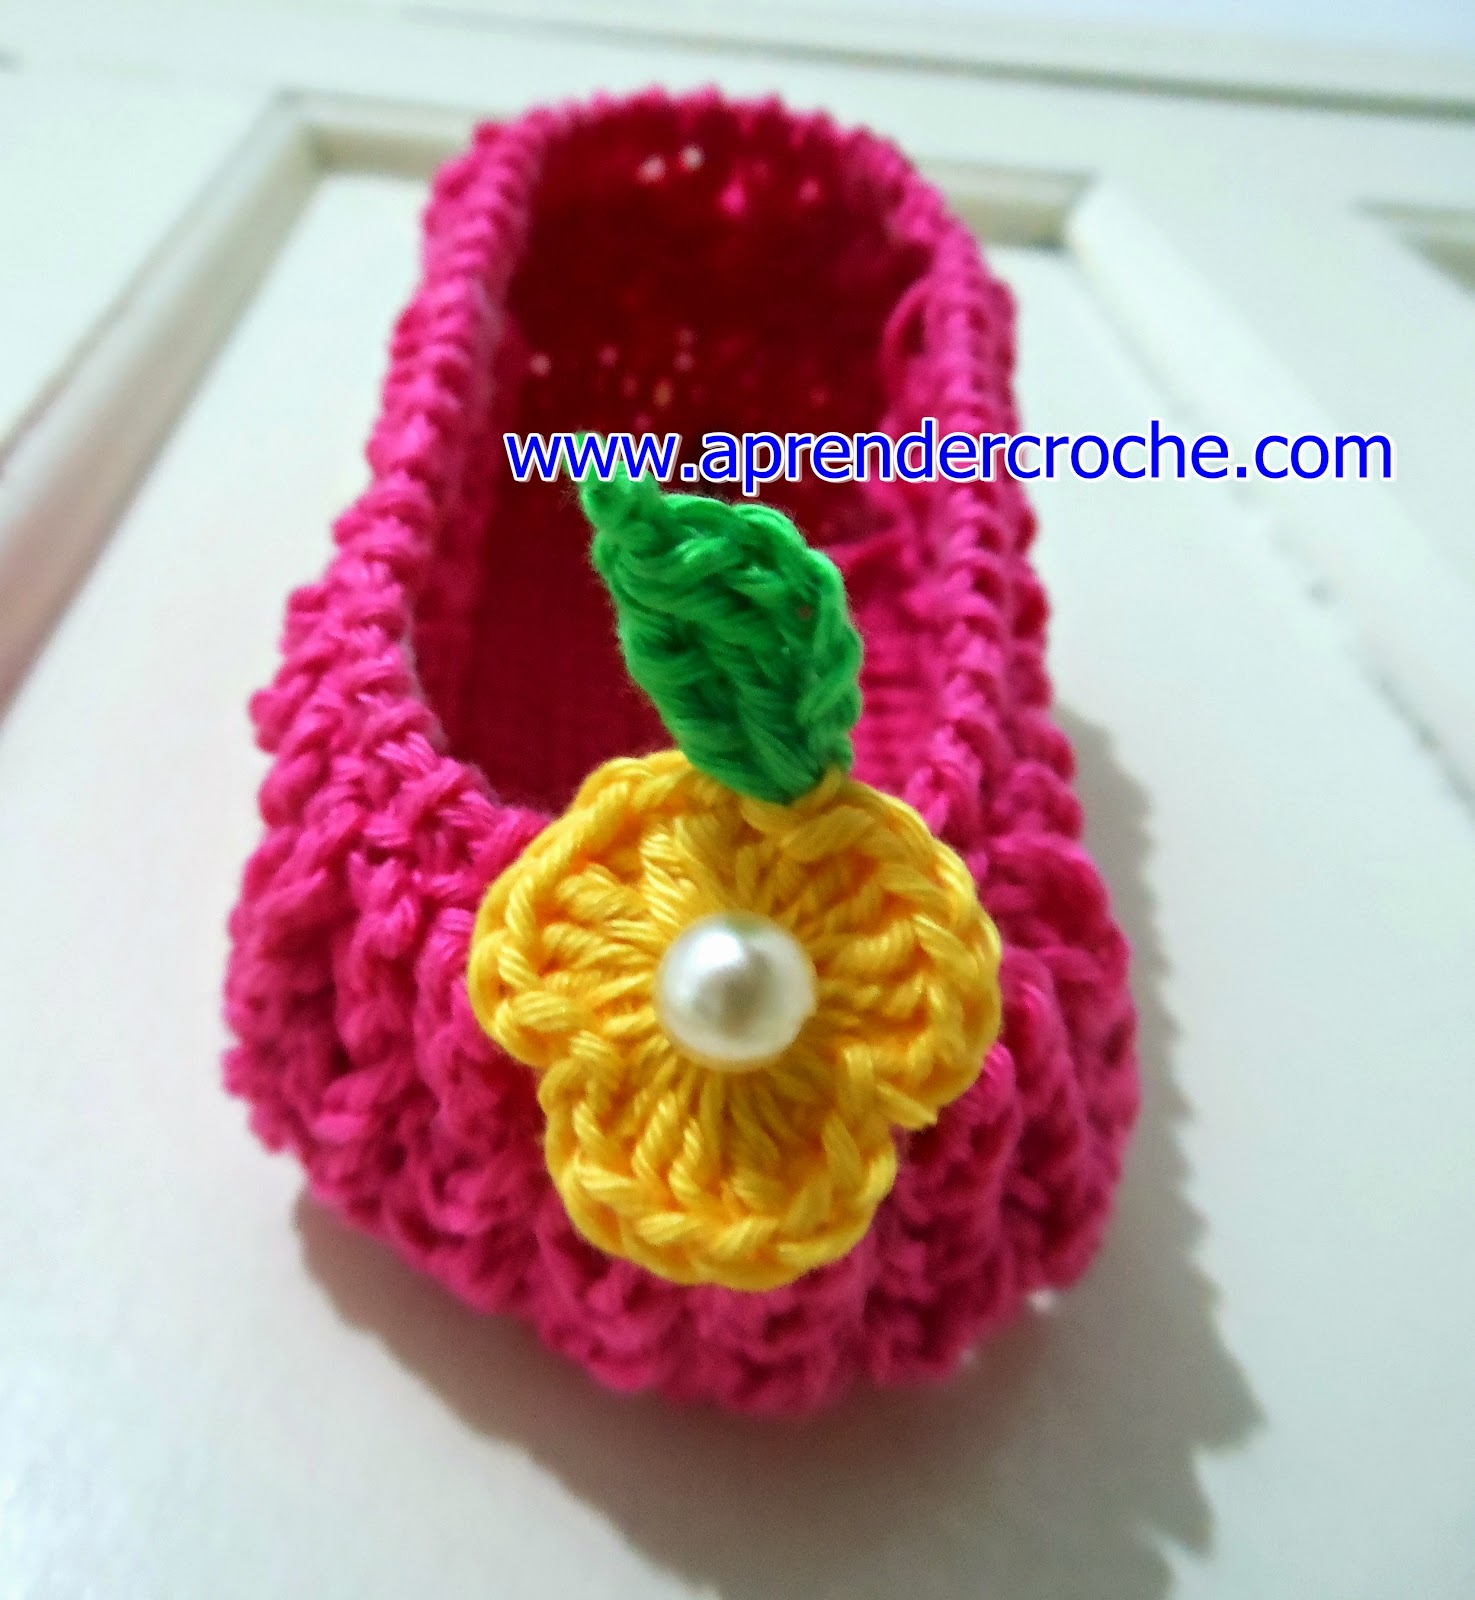 sapatinho croche rosa baby crochet shoes ponto sonia maria aprender croche blog edinir-croche dvd video-aulas curso loja frete gratis youtube facebook pinterest